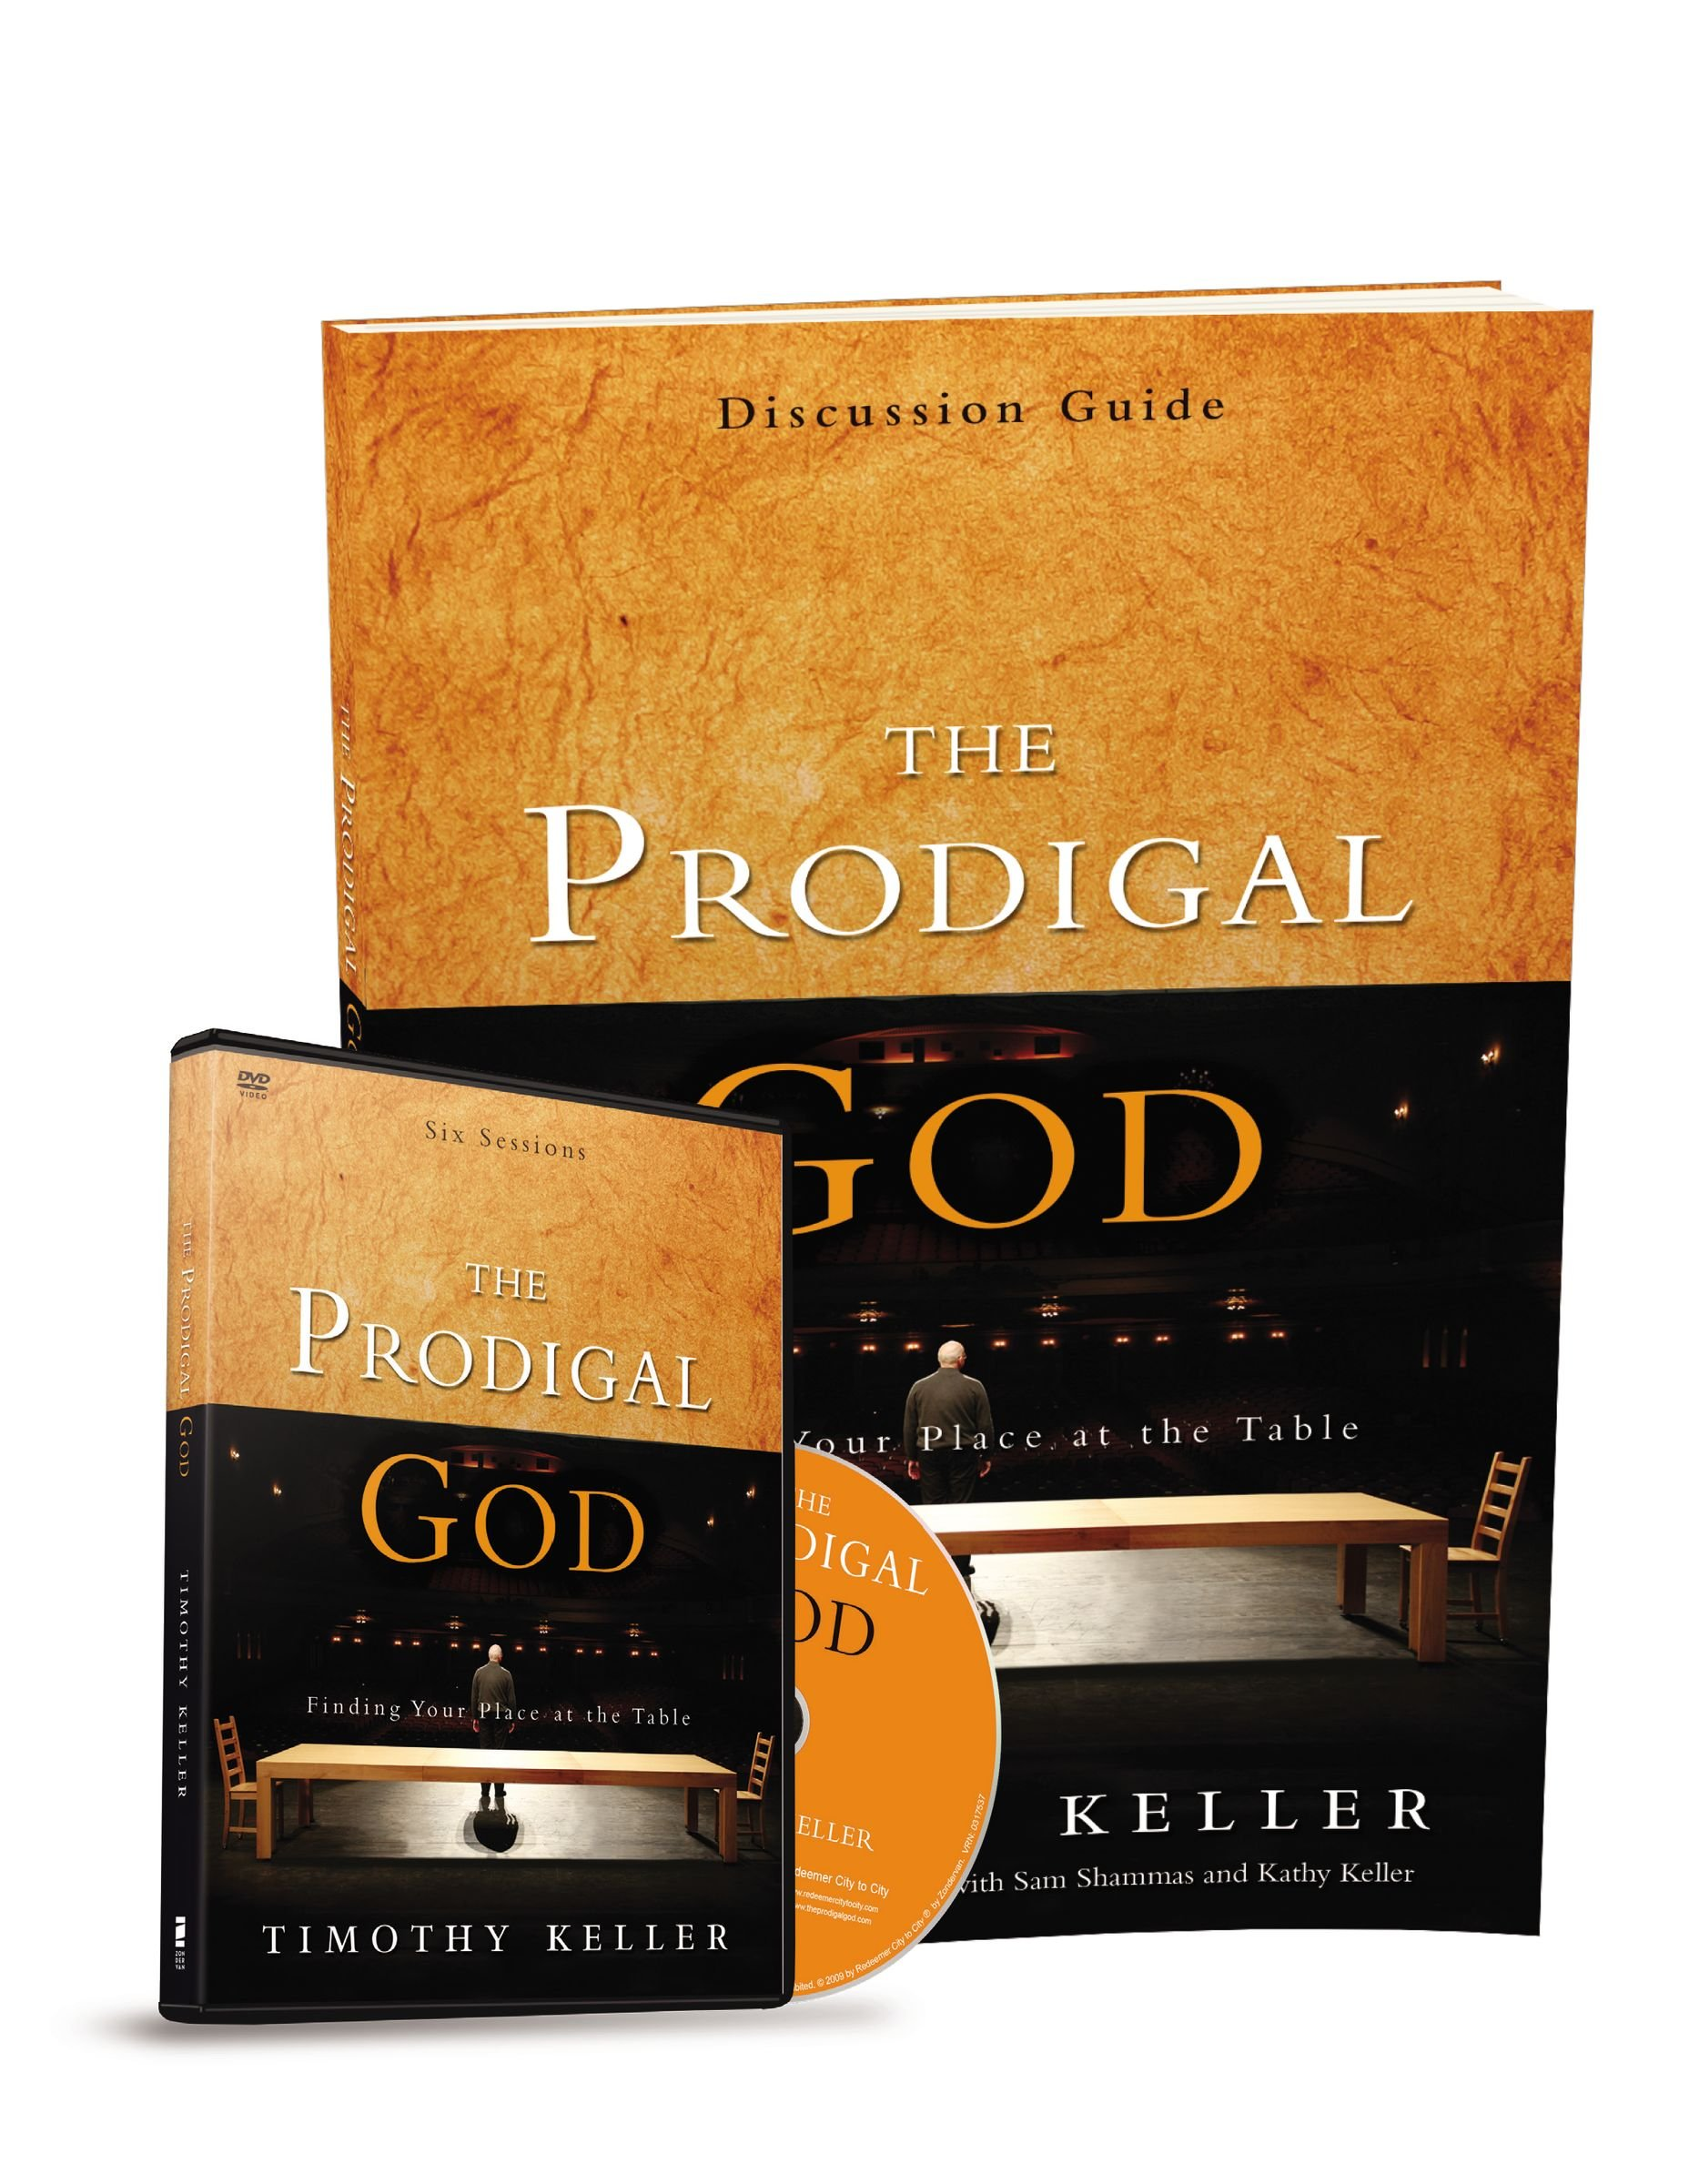 The Prodigal God Discussion Guide with DVD: Finding Your Place at the  Table: Timothy Keller: 9780310691204: Amazon.com: Books